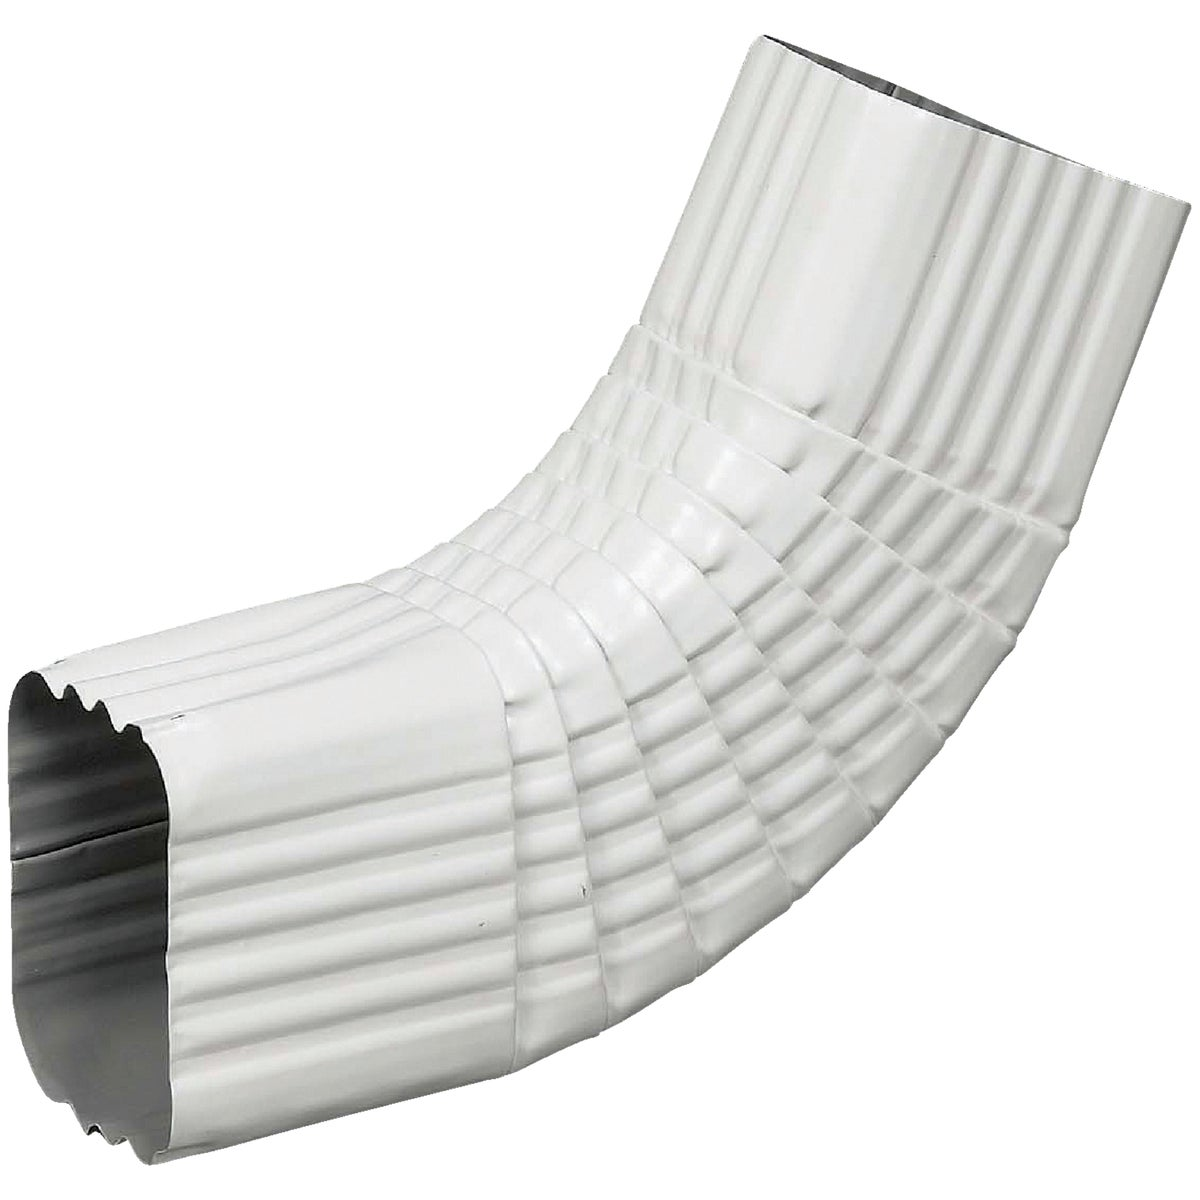 3X4 WHT ALUM B-ELBOW - 47265 by Amerimax Home Prod